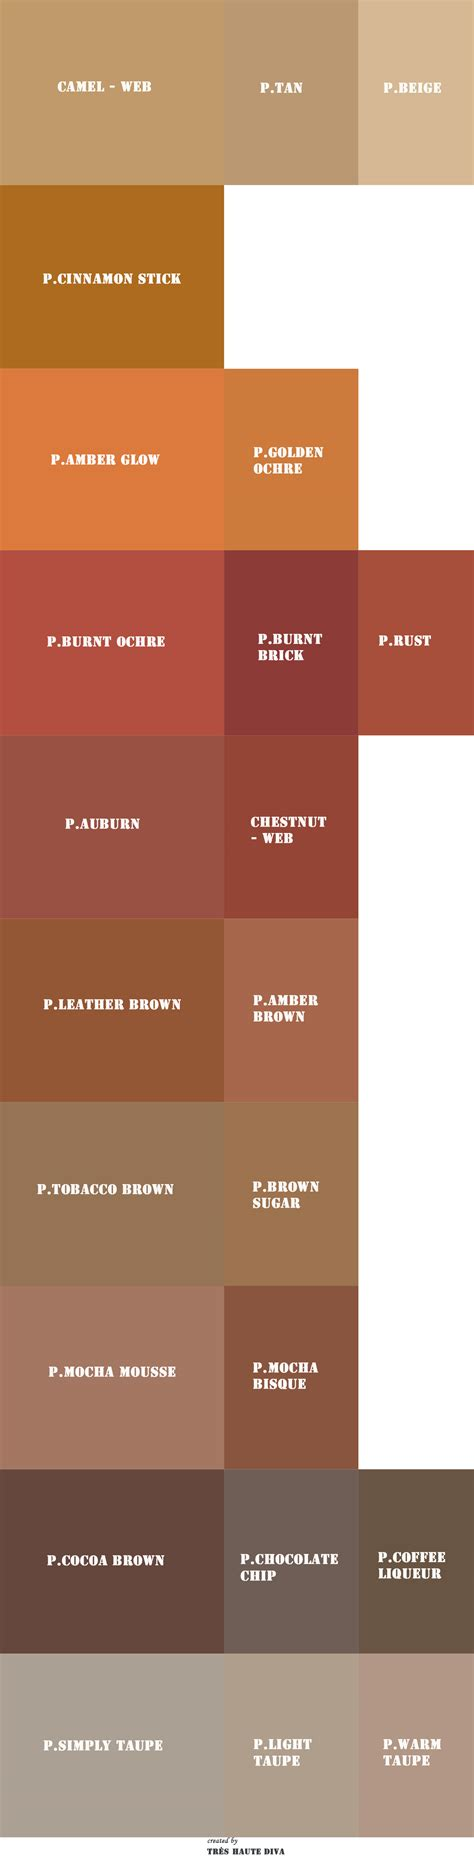 beige color meaning beige color meaning 100 beige color meaning web design 101